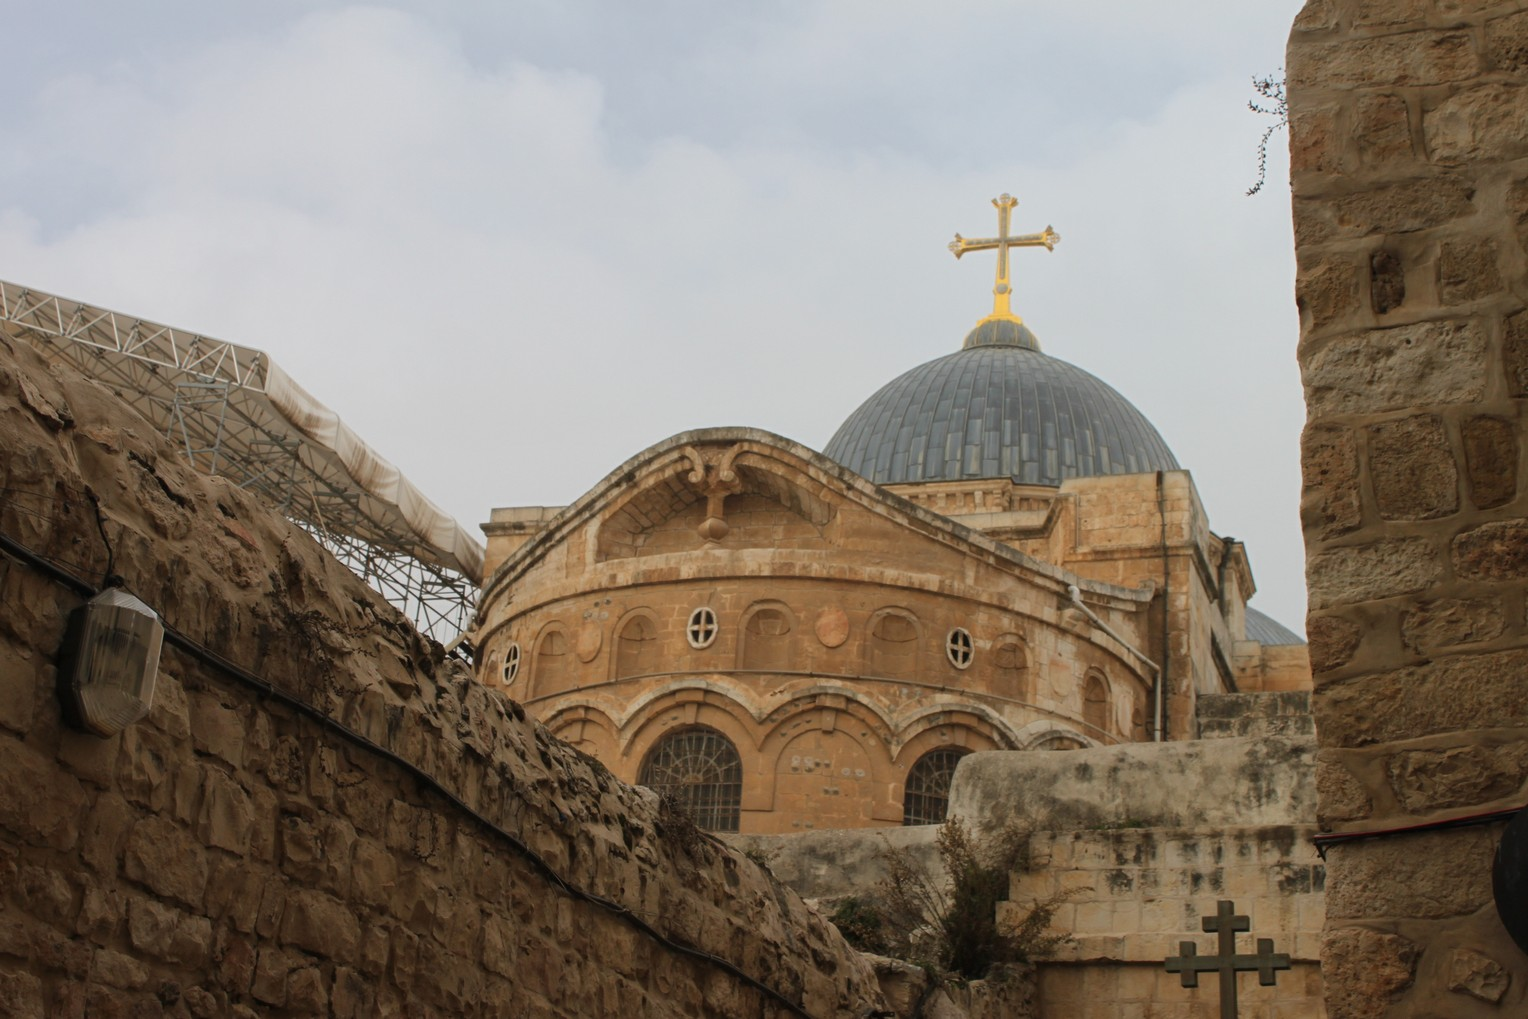 Images: The Church of the Holy Sepulchre - Live Science Church of the holy sepulcher photos